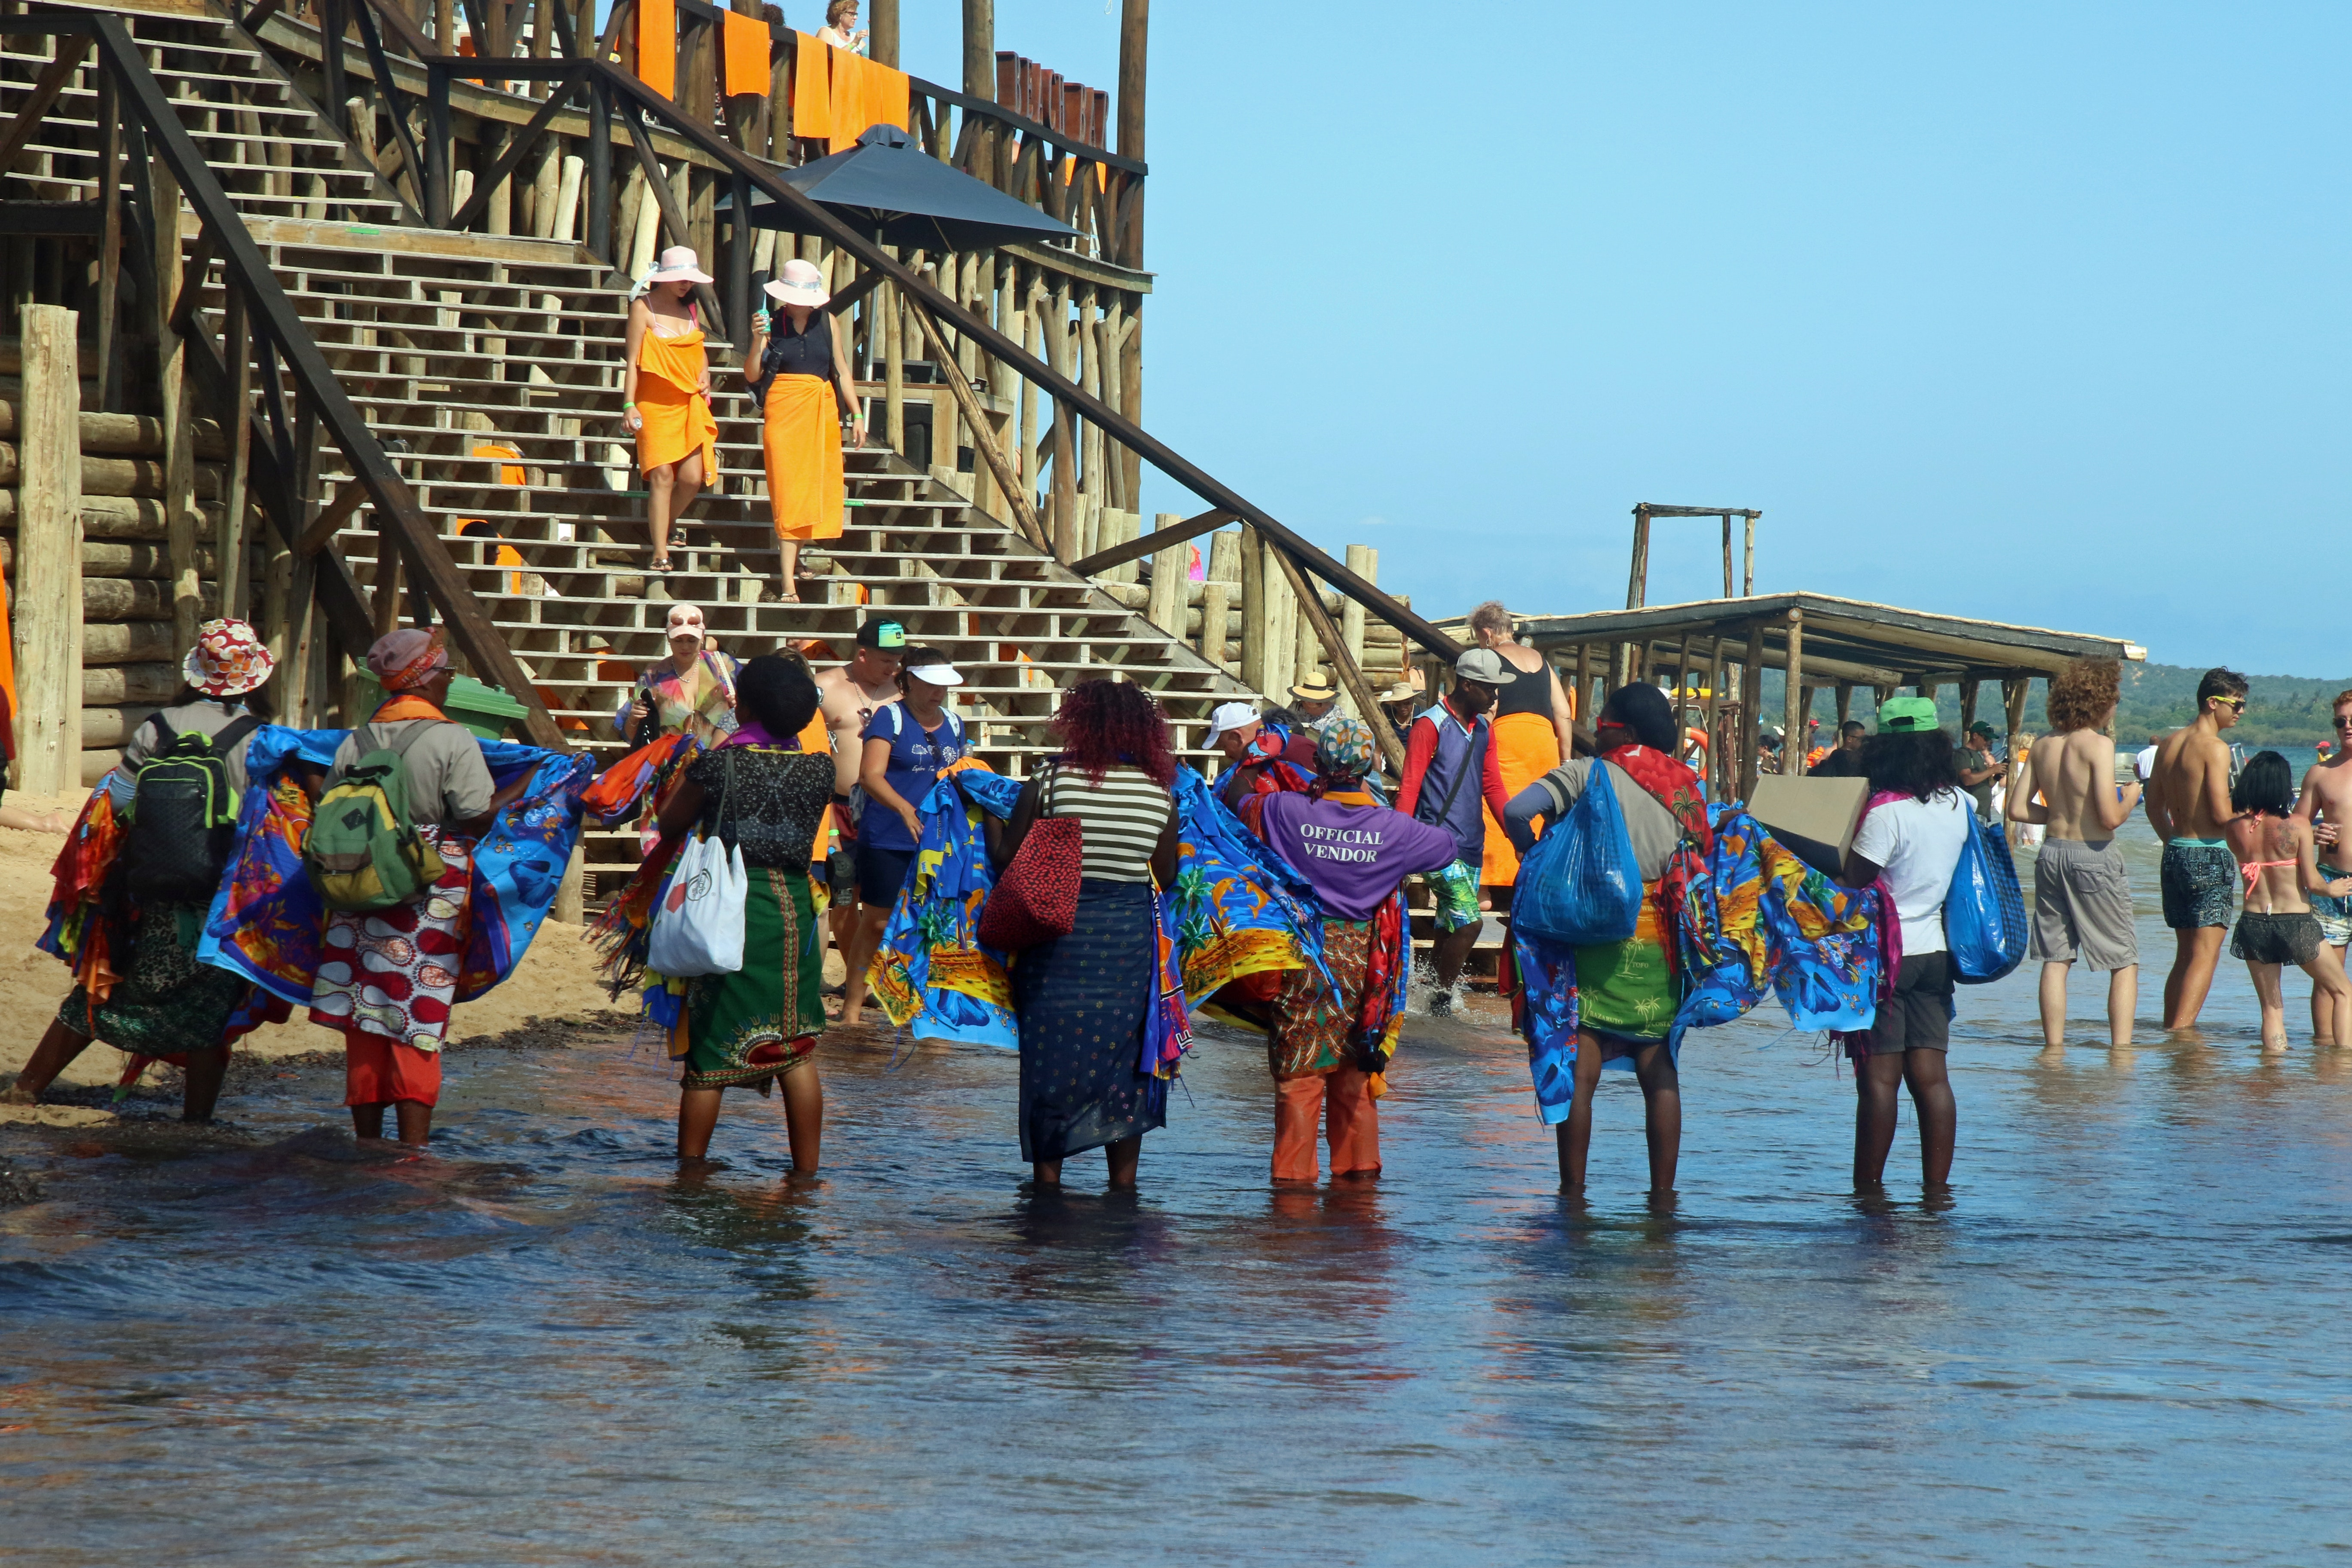 Vendors waiting for tourists on the beach photo